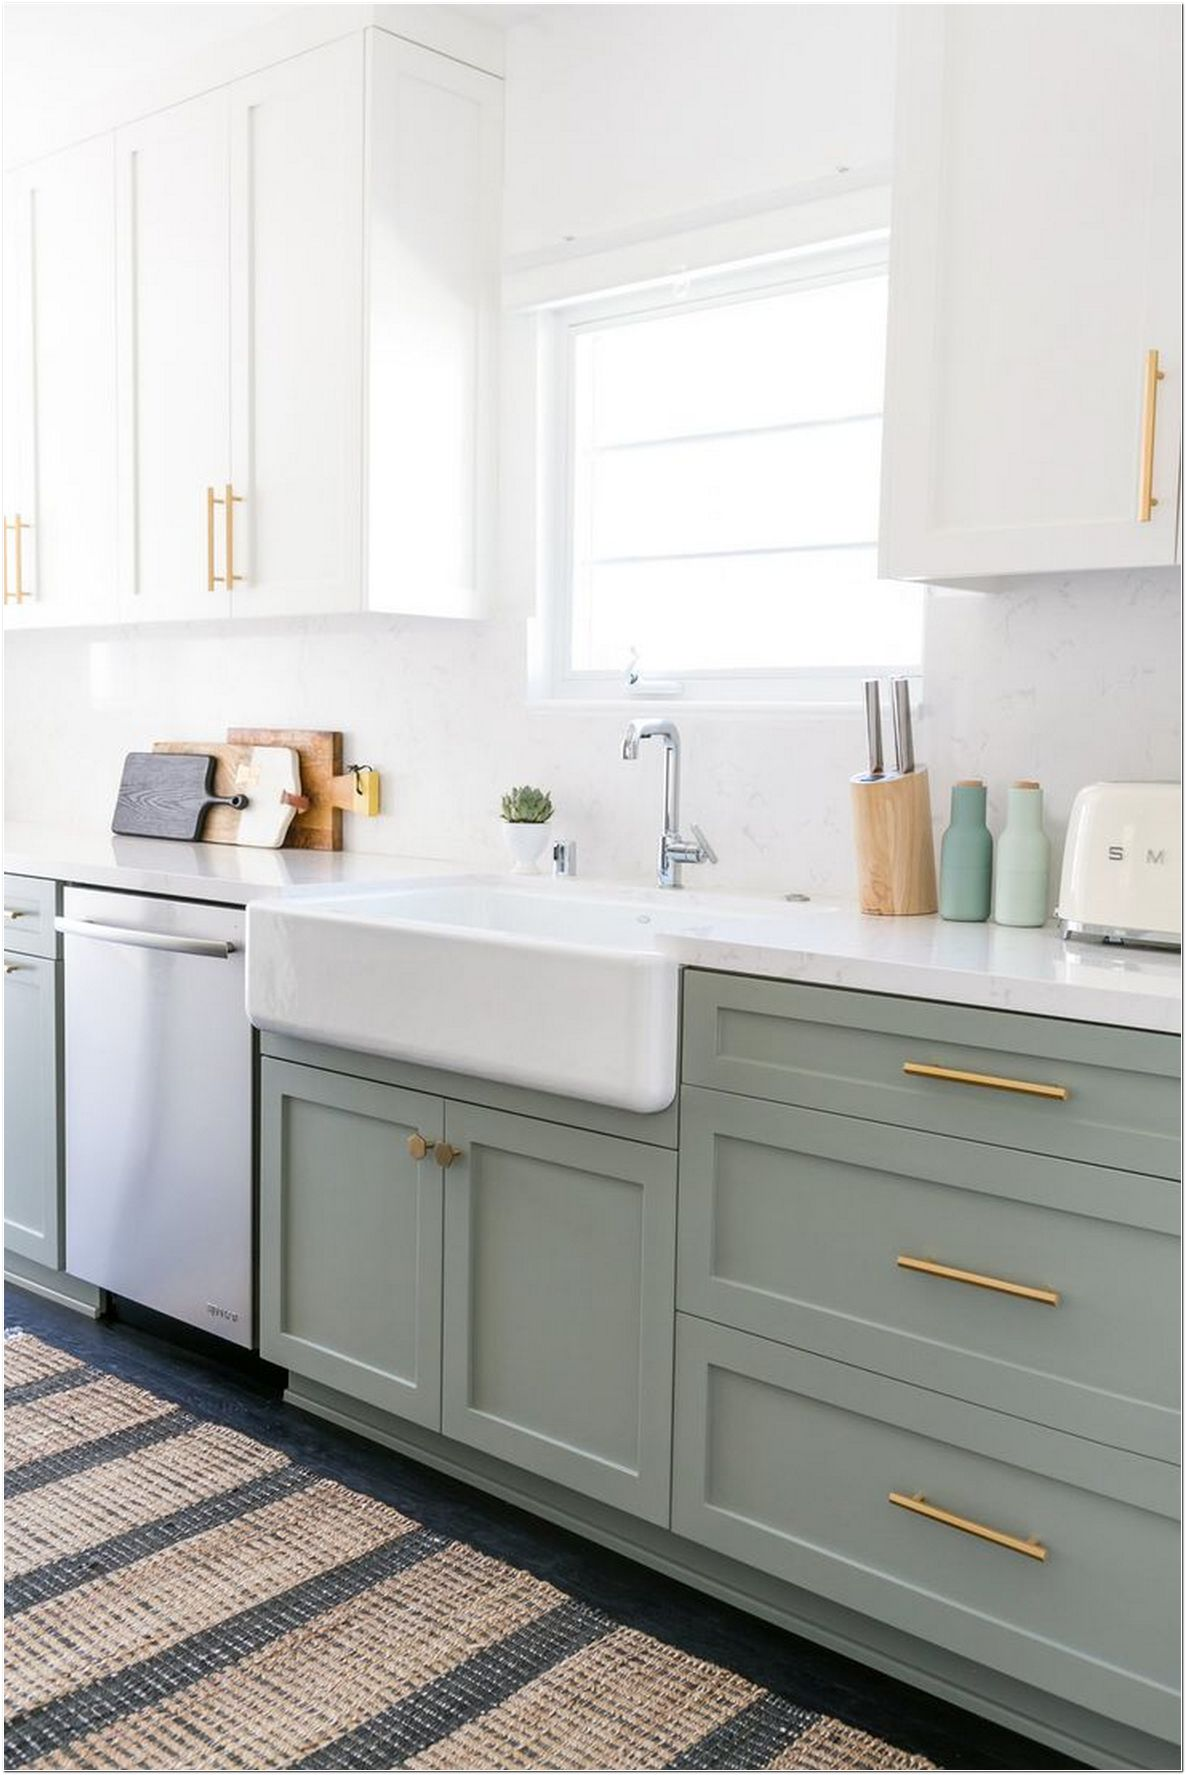 If you want to learn how to paint kitchen cabinets, there are several things you need to know before you go to a paint store. You have to know what colors to use for painting your cabinets and you also have to know how to paint the walls in your kitchen. Here are some tips that can help you get started: One: Learn about the paints available for kitchen cabinets. You will be glad that you did once you get to the store and see all the different colors and finishes available for kitchen cabinets. There are a lot of colors and finishes to choose from, but one thing you must know is that these are temporary paint. Once the paint dries, you will have to repaint the cabinets. Two: Consider painting the walls in your kitchen, especially if you want to add color and contrast to your kitchen. You can also ask the salesperson at the paint store to recommend a color for your walls. The design of your kitchen depends on the way the walls are painted. You can paint your walls with chalk paint or you can paint them with the old paint that is still in the walls. Three: It is important that you learn how to paint kitchen cabinets before you start the project. You should choose the paint based on the purpose of the project. For example, if you are learning how to paint kitchen cabinets and the cabinets need to be painted in a different color than the walls, you will need to purchase two different colors. If you are going to paint the walls with chalk paint, you need to mix a darker shade for the walls and a lighter shade for the cabinets.